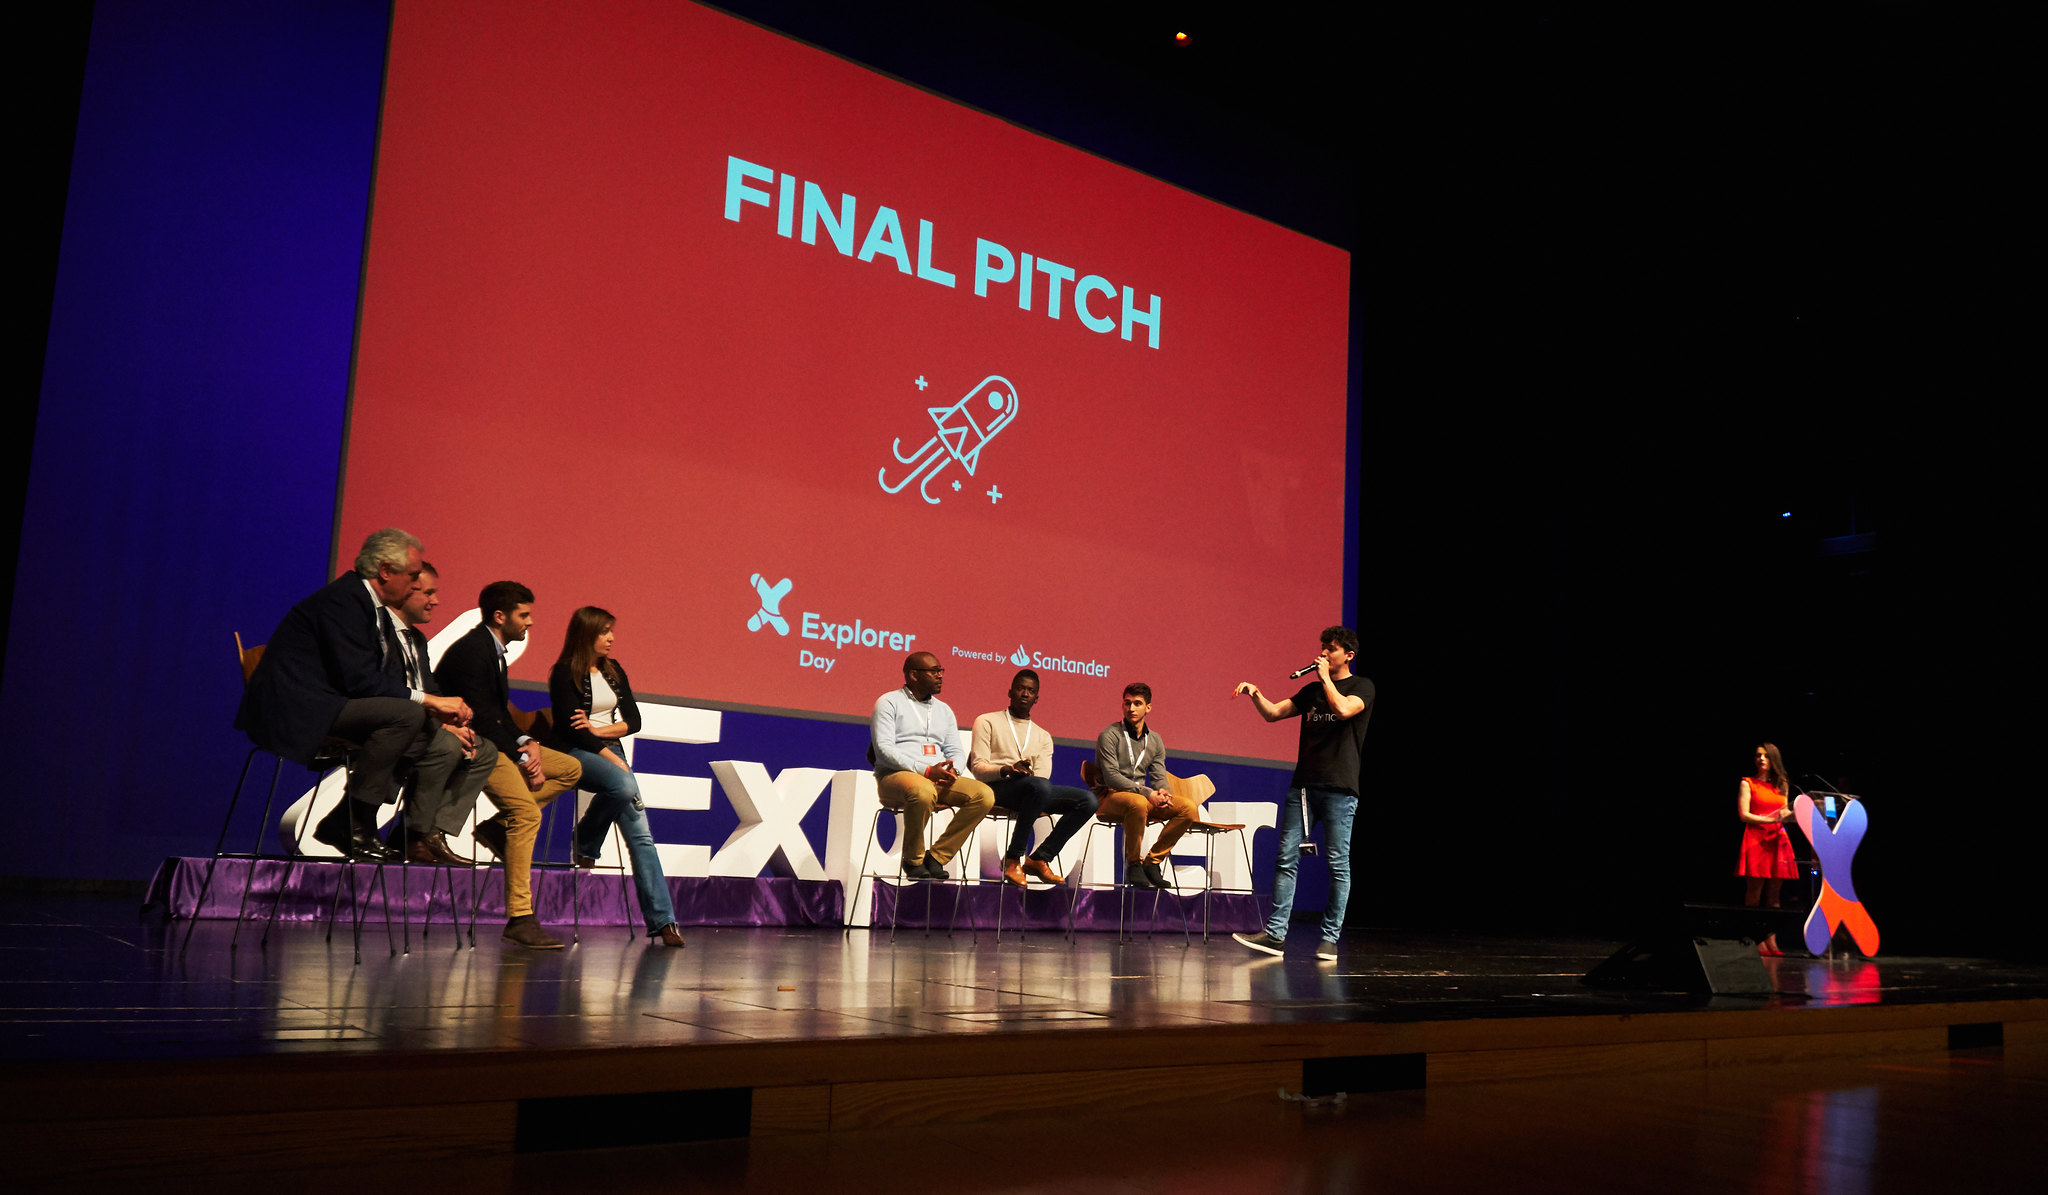 ExplorerDay finalpitch18